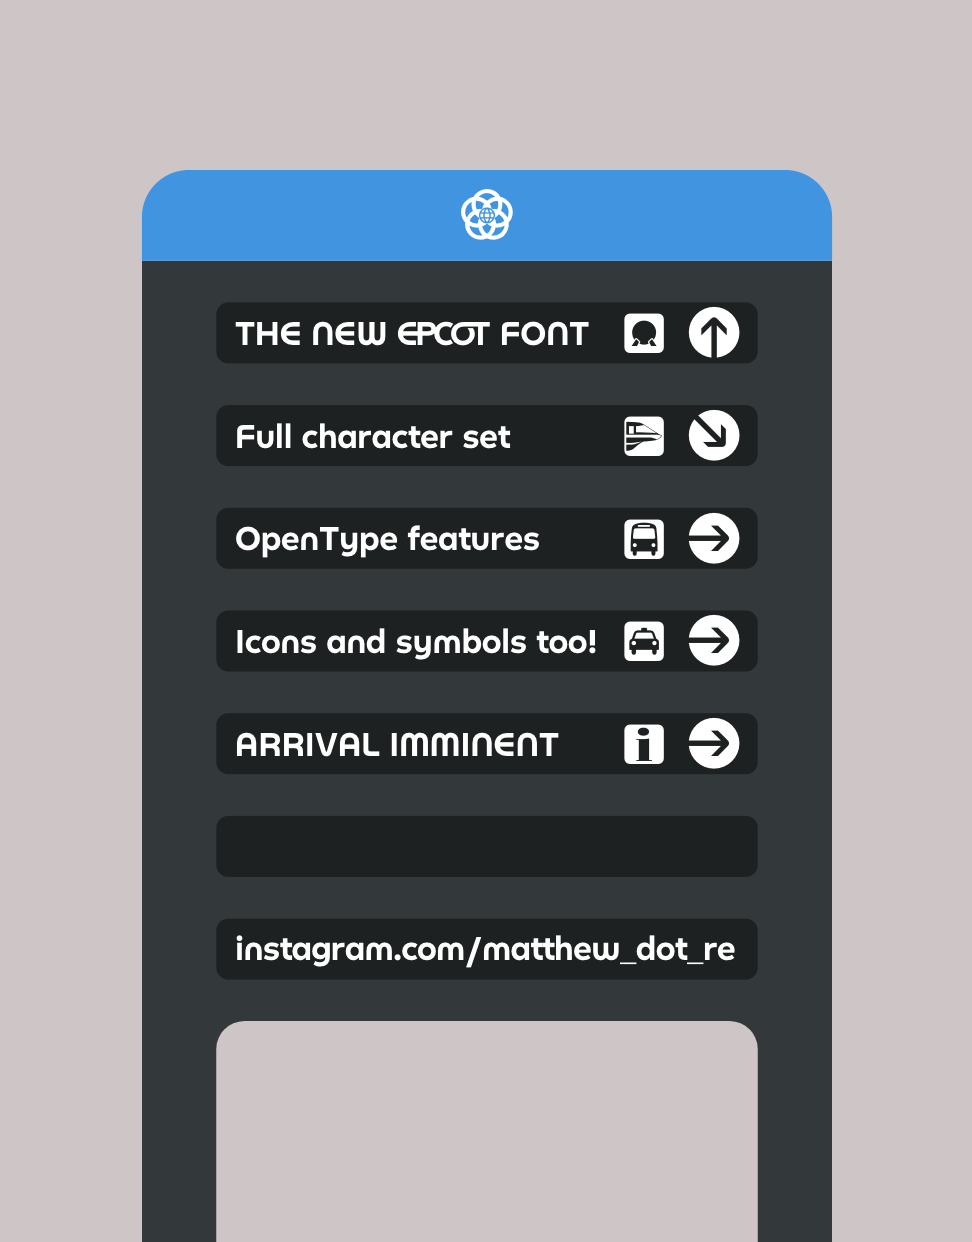 Coming soon: A digital recreation of the new EPCOT font, complete with ligatures, pavilion symbols, wayfinding icons, and more!